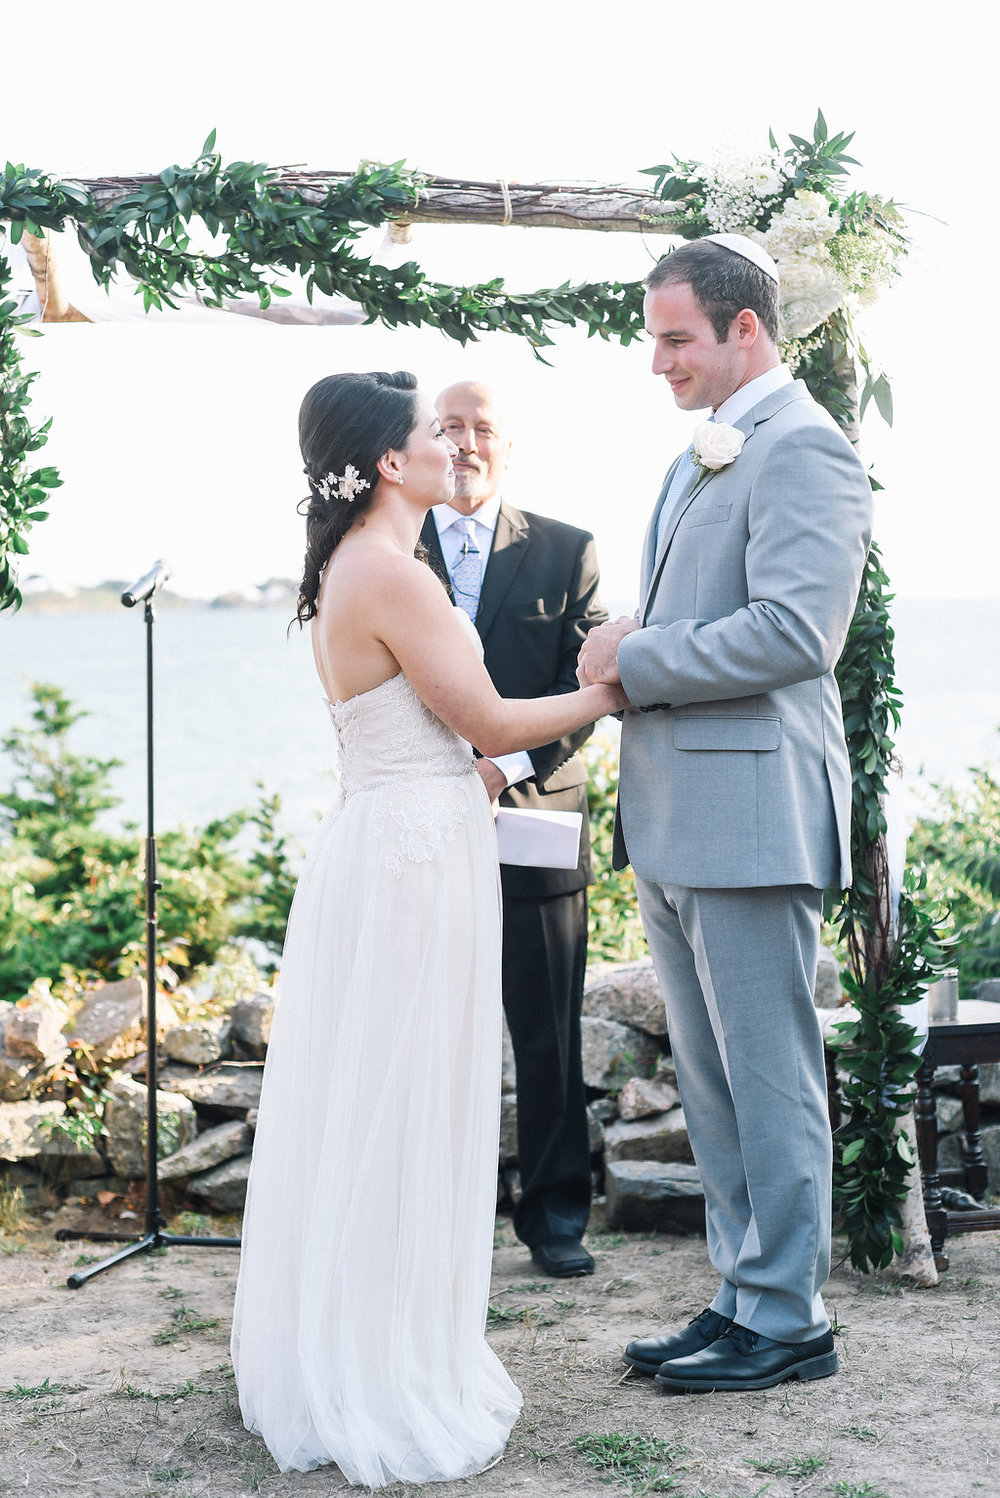 Dragonline_Studios_Jamestown_RI_Wedding-126.jpg